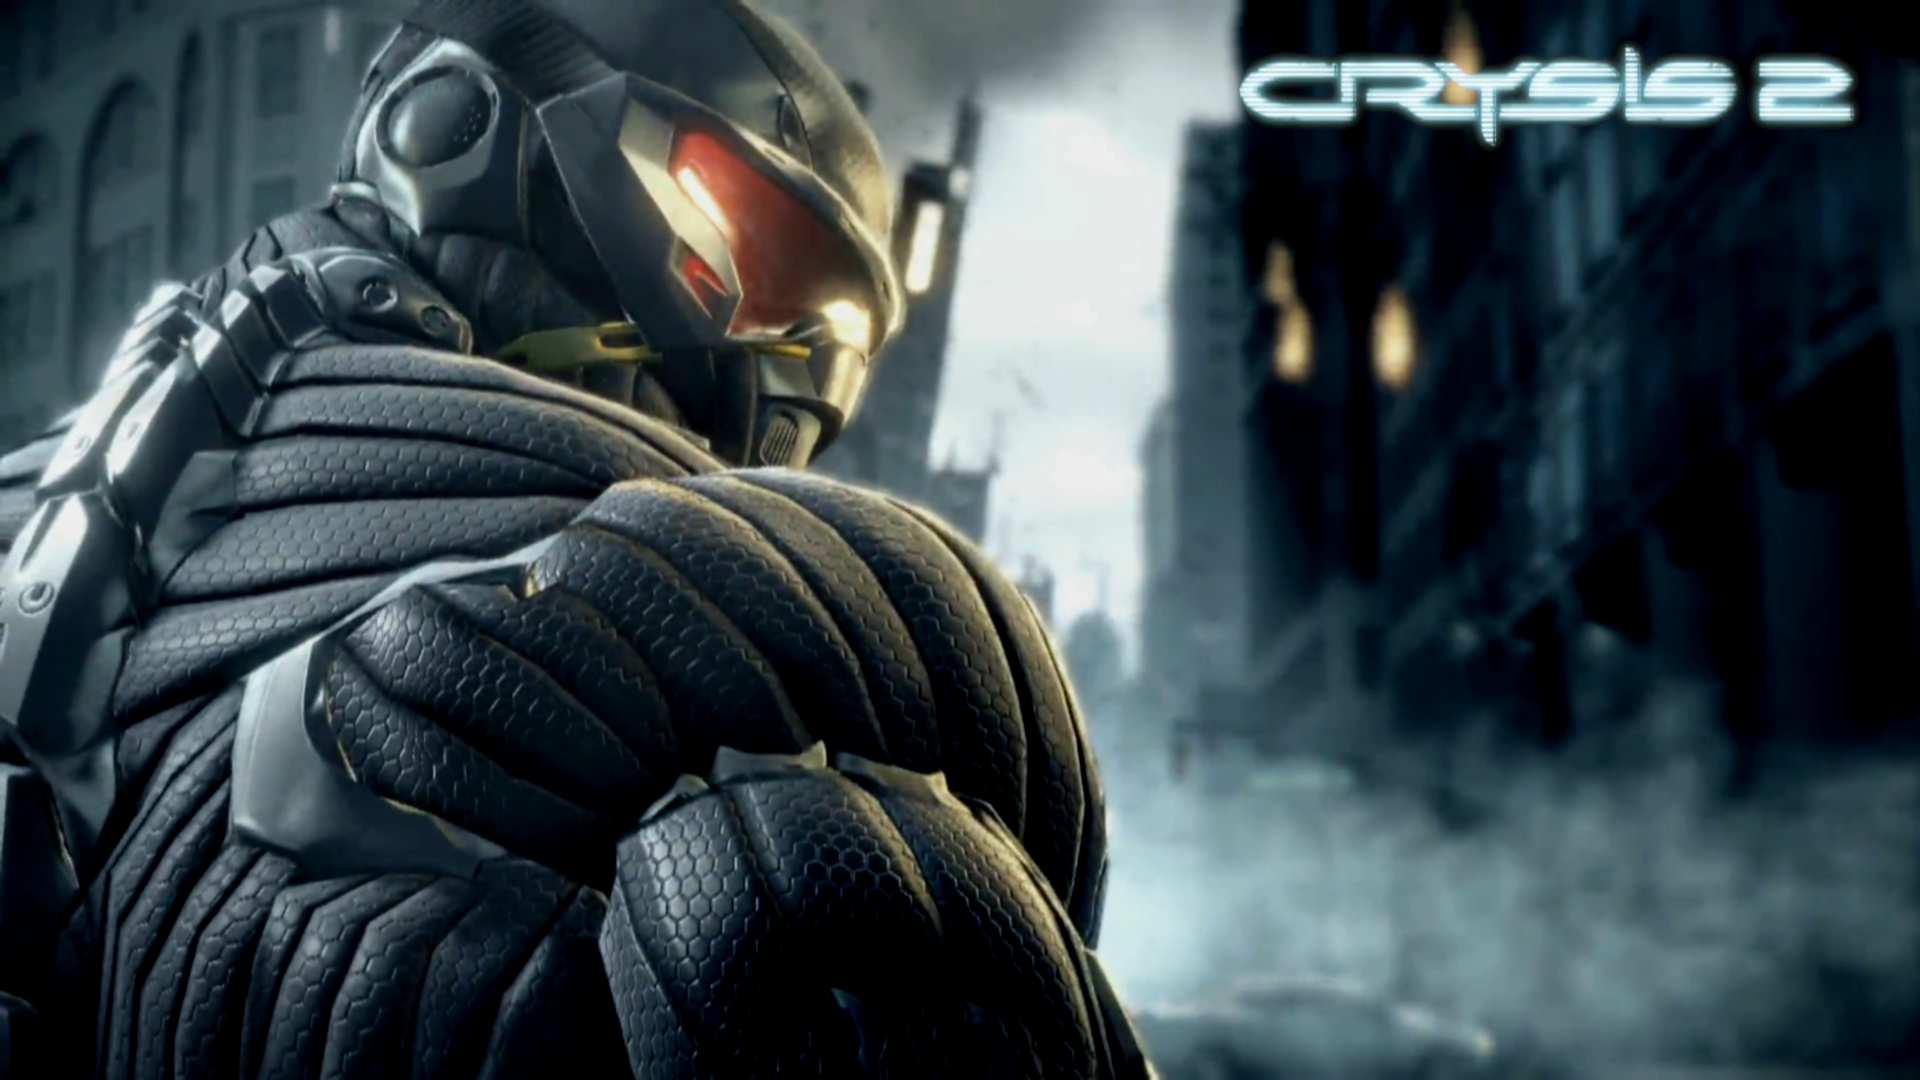 Crysis Wallpaper HD Iphone